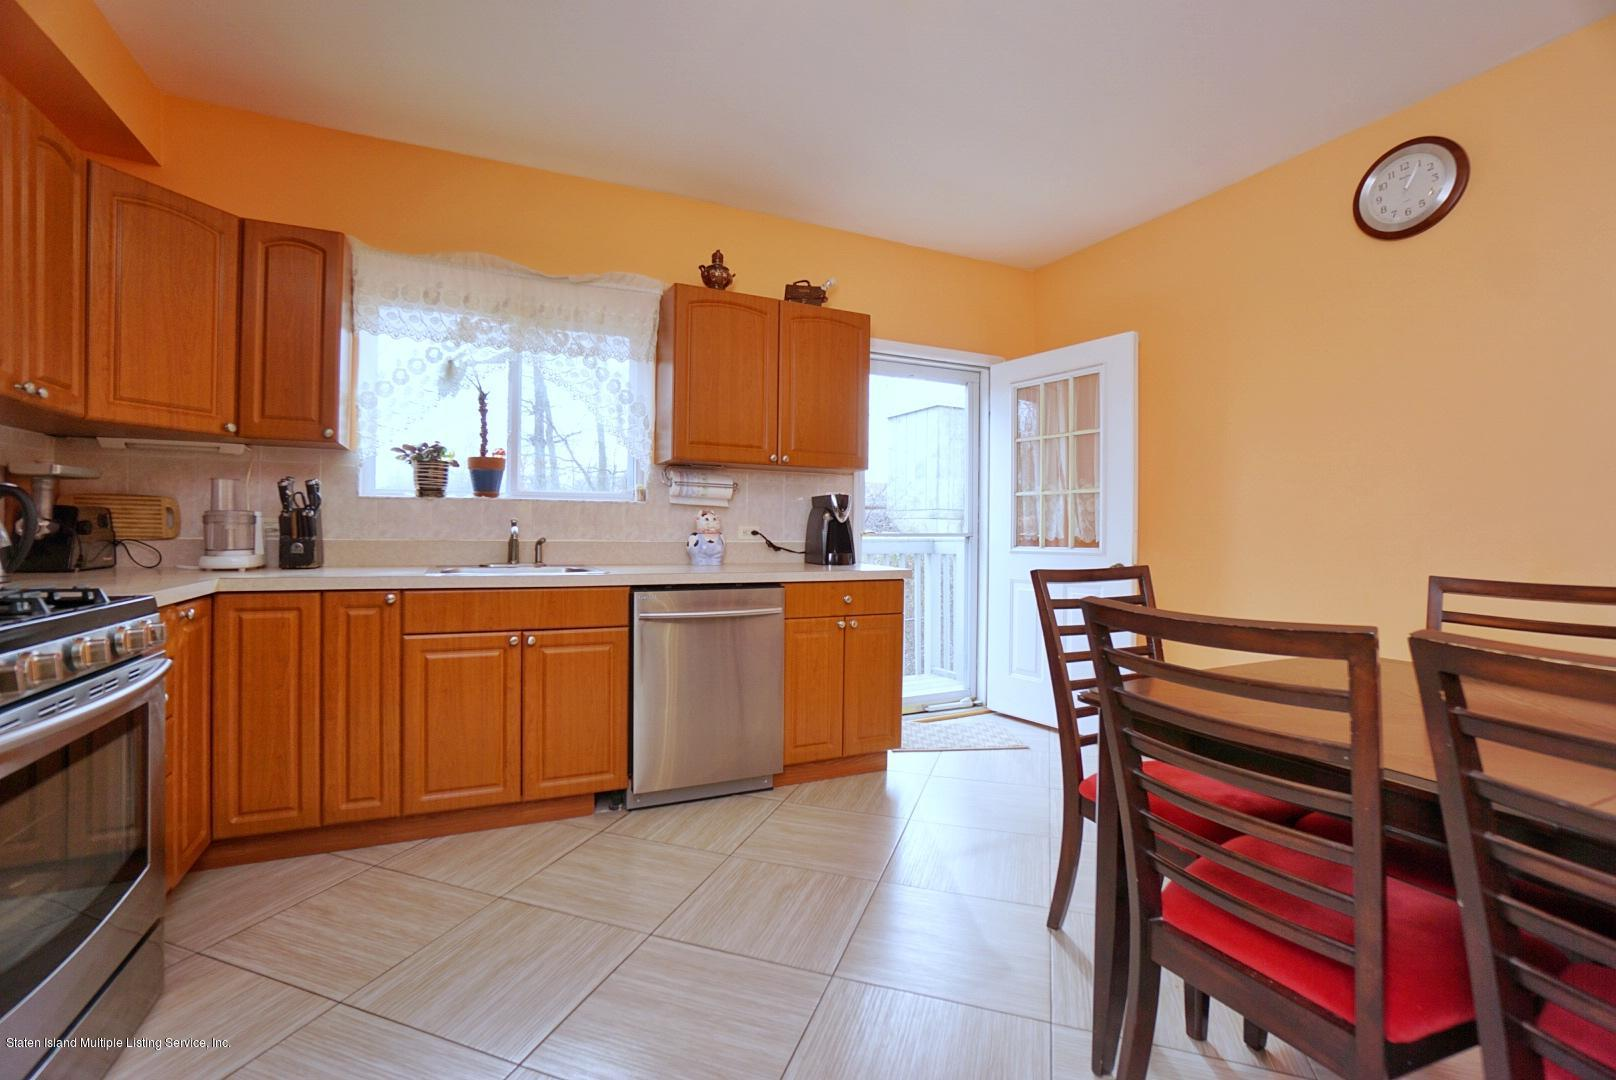 Single Family - Attached 30 Cranberry Court  Staten Island, NY 10309, MLS-1135421-12